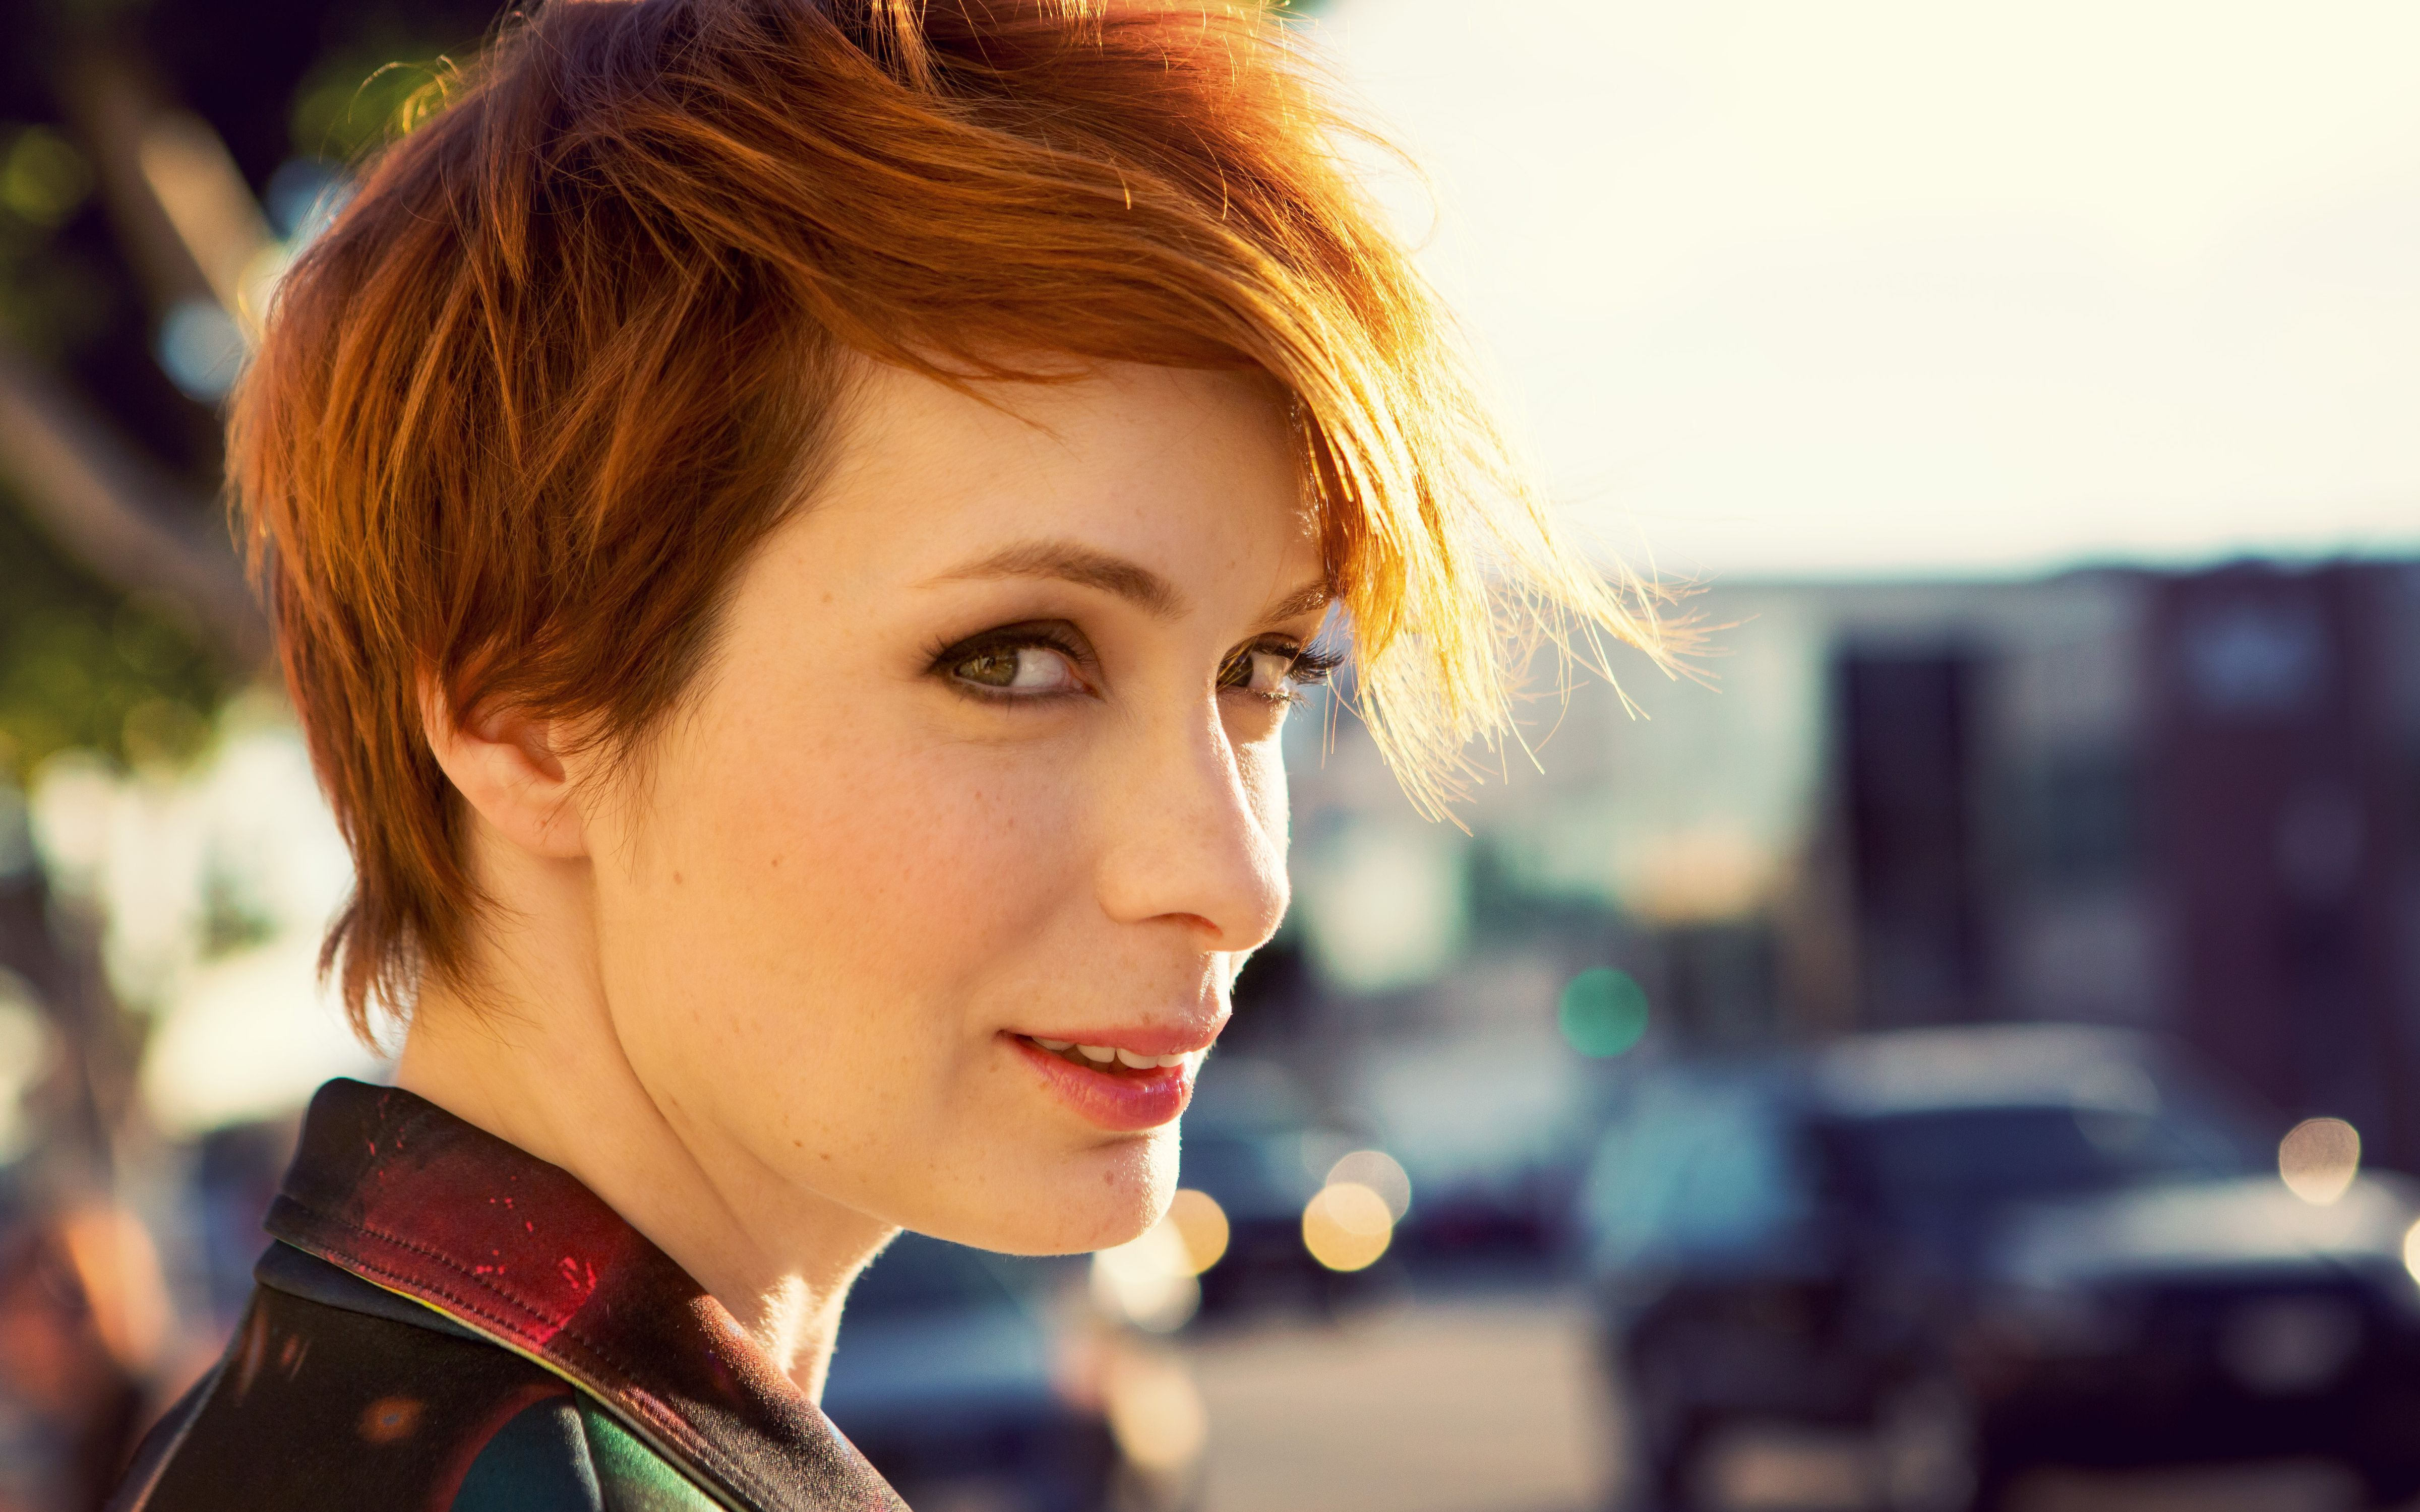 Nerdy Alert: Felicia Day on Geek and Sundry - CW44 Tampa Bay